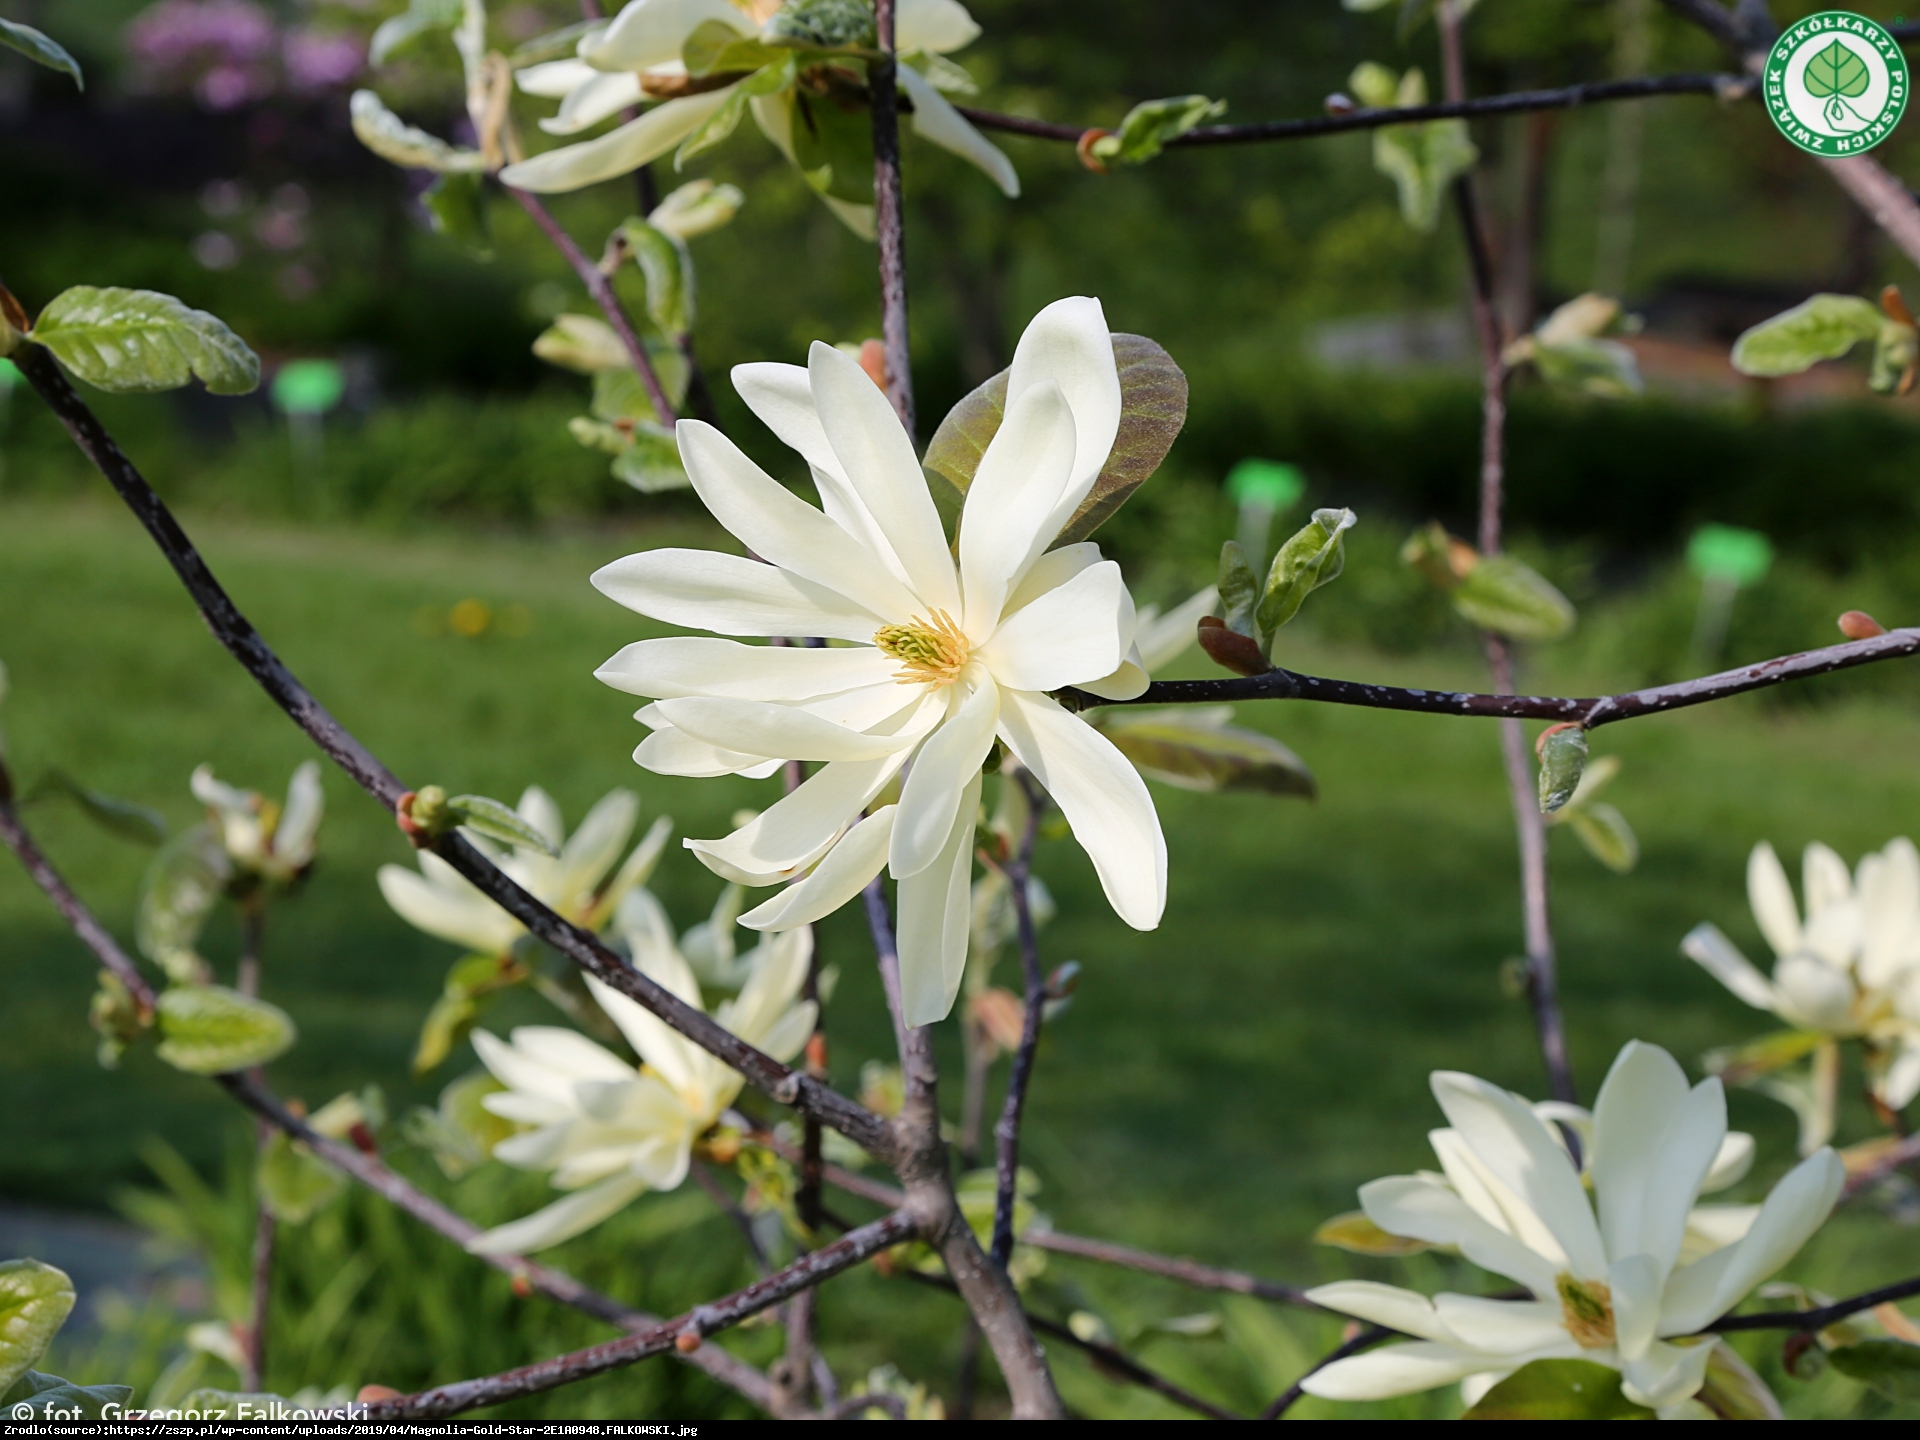 Magnolia duża Gold star - Magnolia Gold star